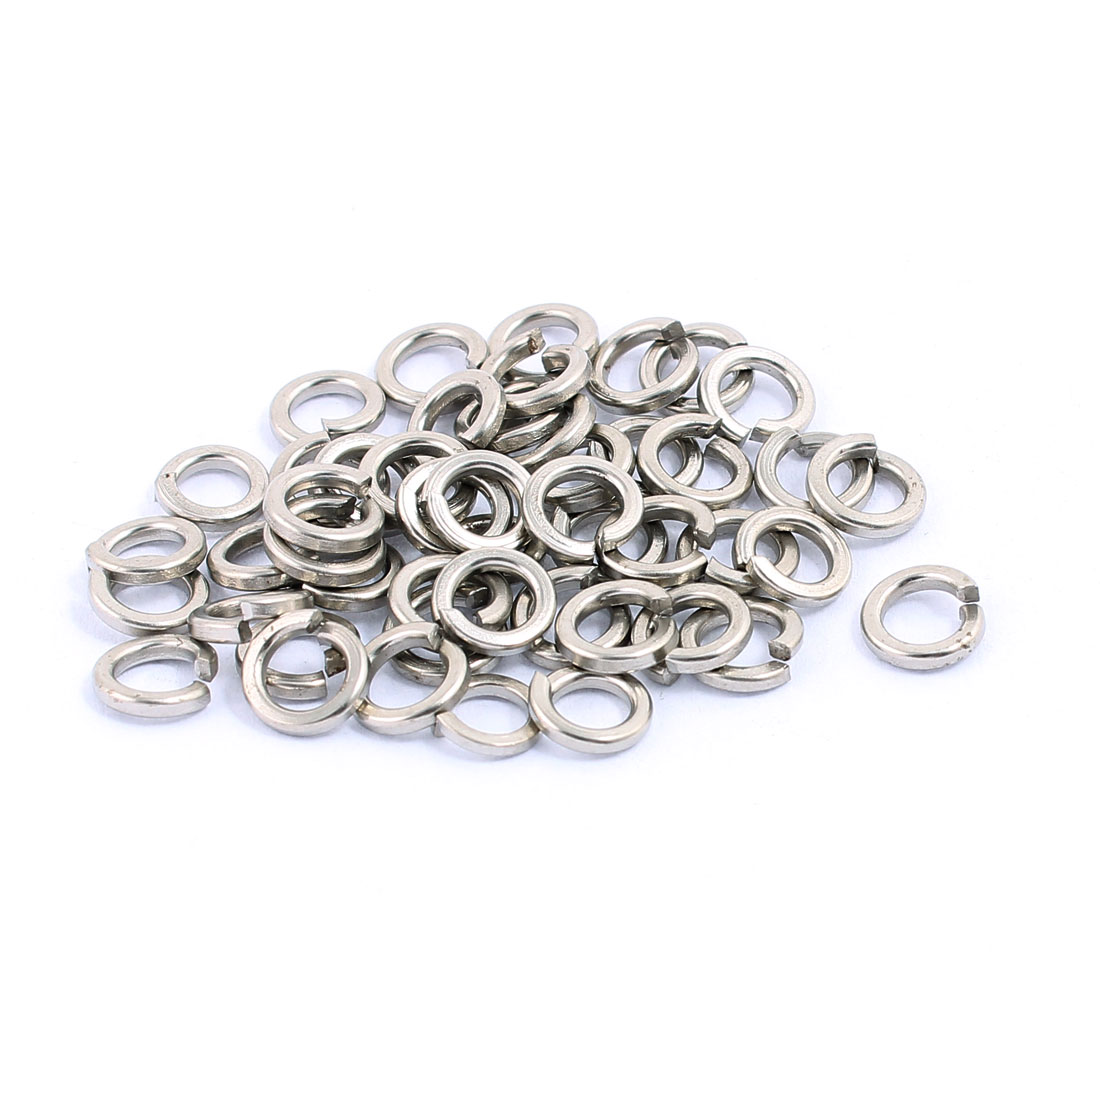 50pcs 4x6mm 304 Stainless Rectangular Section Split Lock Spring Washers Screw Spacer